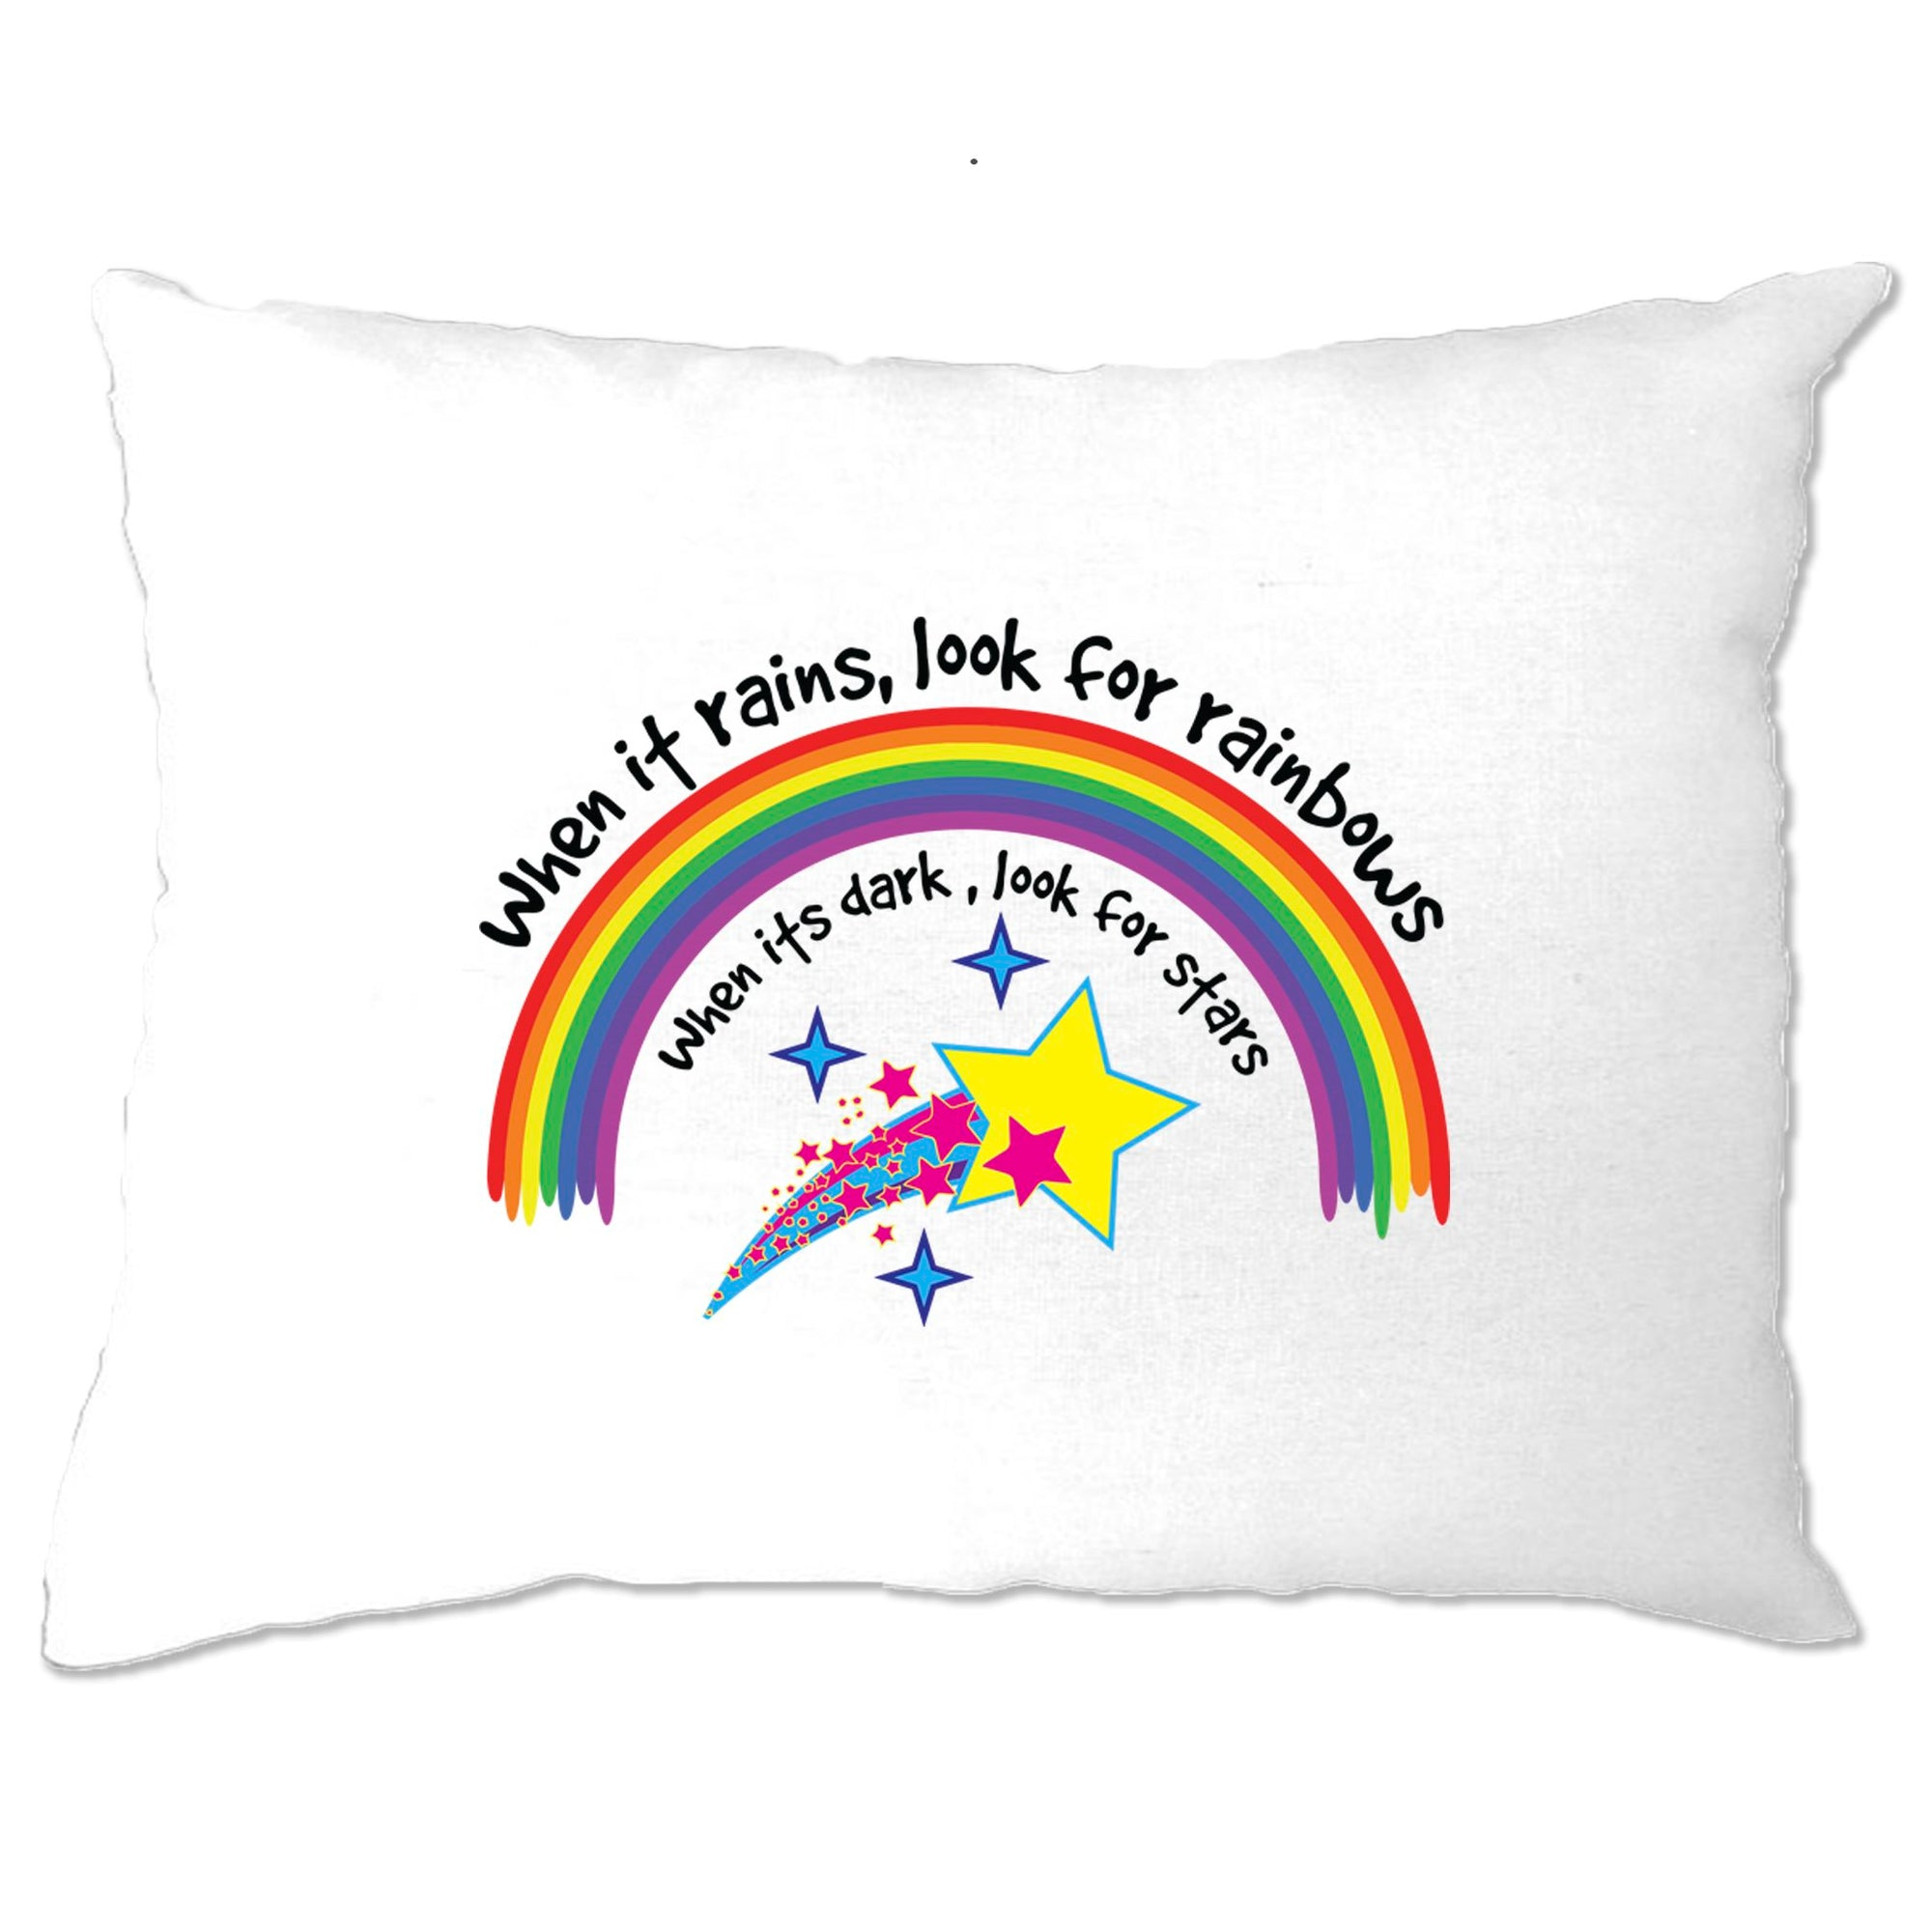 Inspirational Pillow Case When It Rains, Look For Rainbows